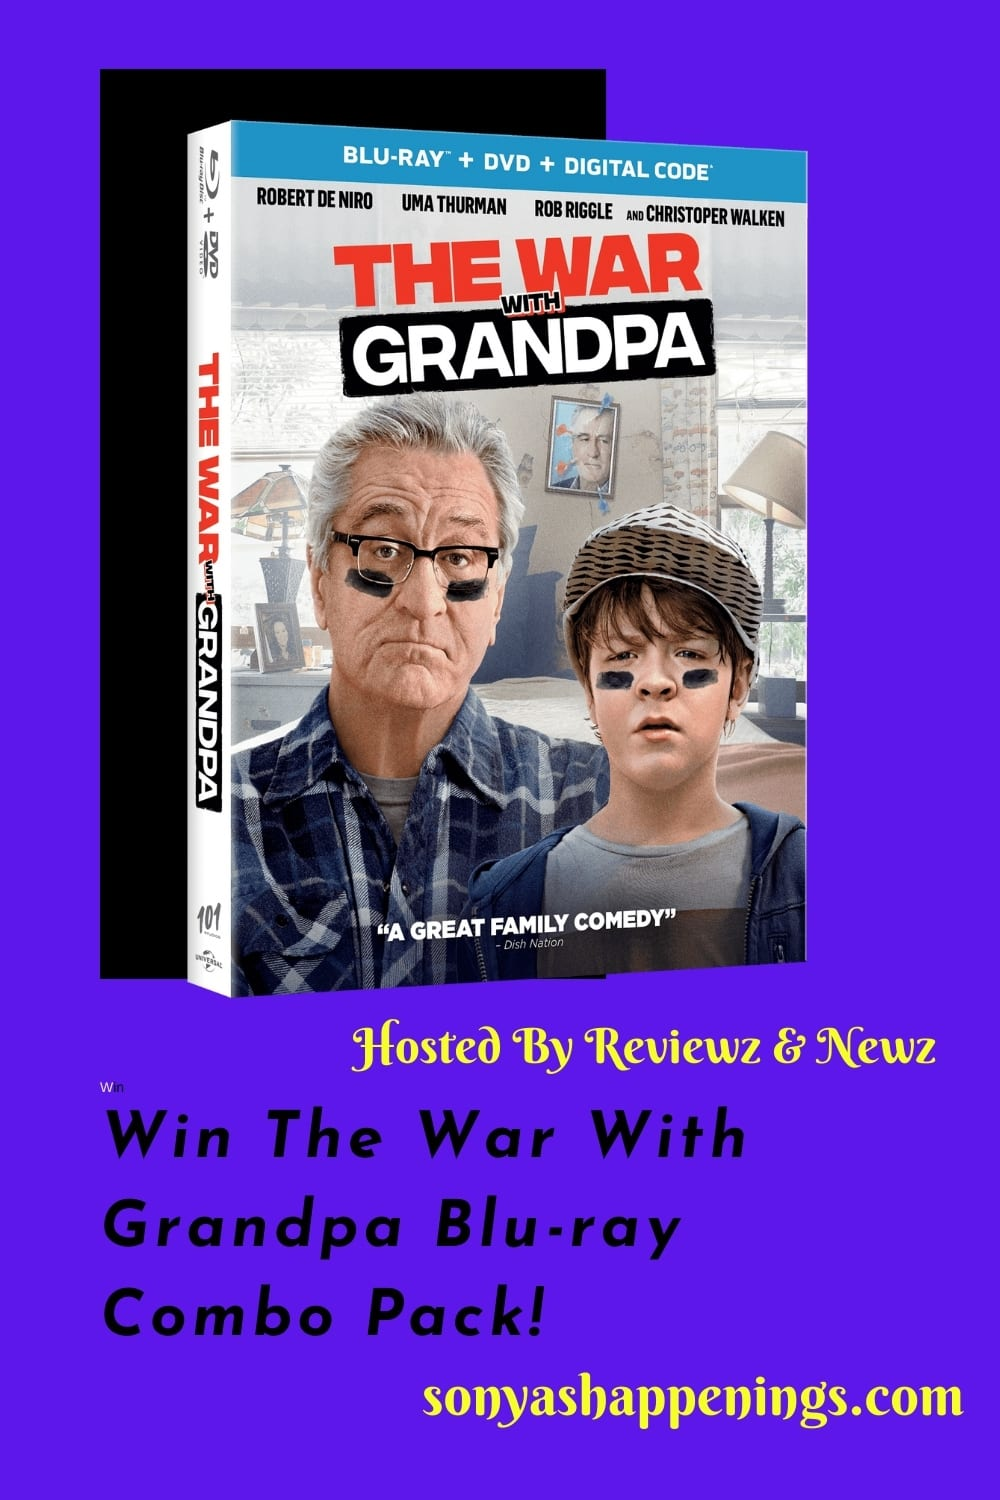 Win the War With Grandpa Blu-ray Combo Pack ~ Giveaway Ends 12-28